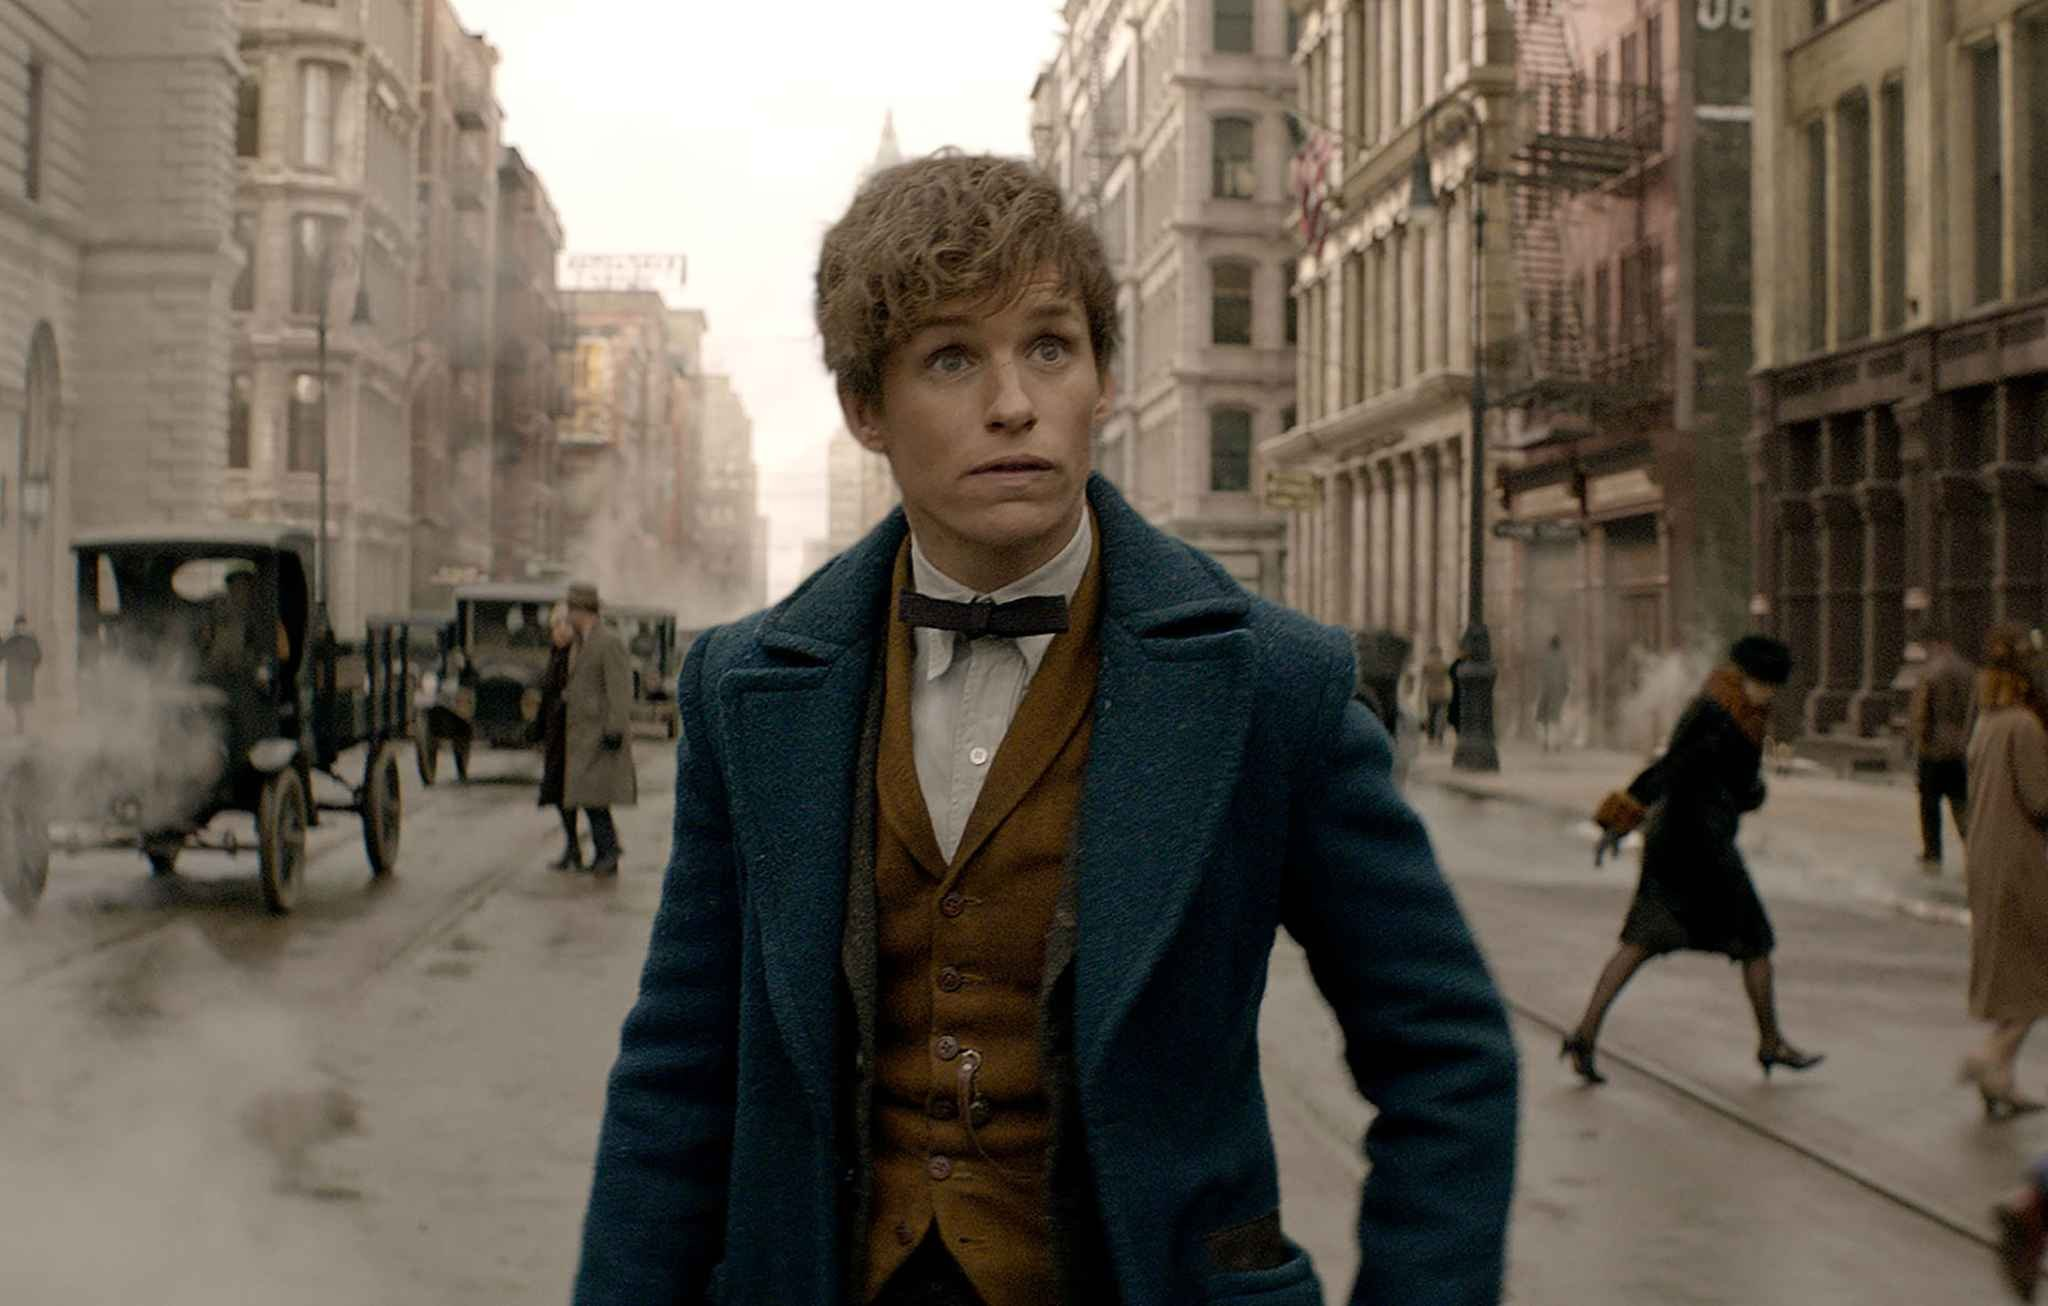 2048x1536-fit_eddie-redmayne-newt-scamander-animaux-fantastiques-spin-off-harry-potter